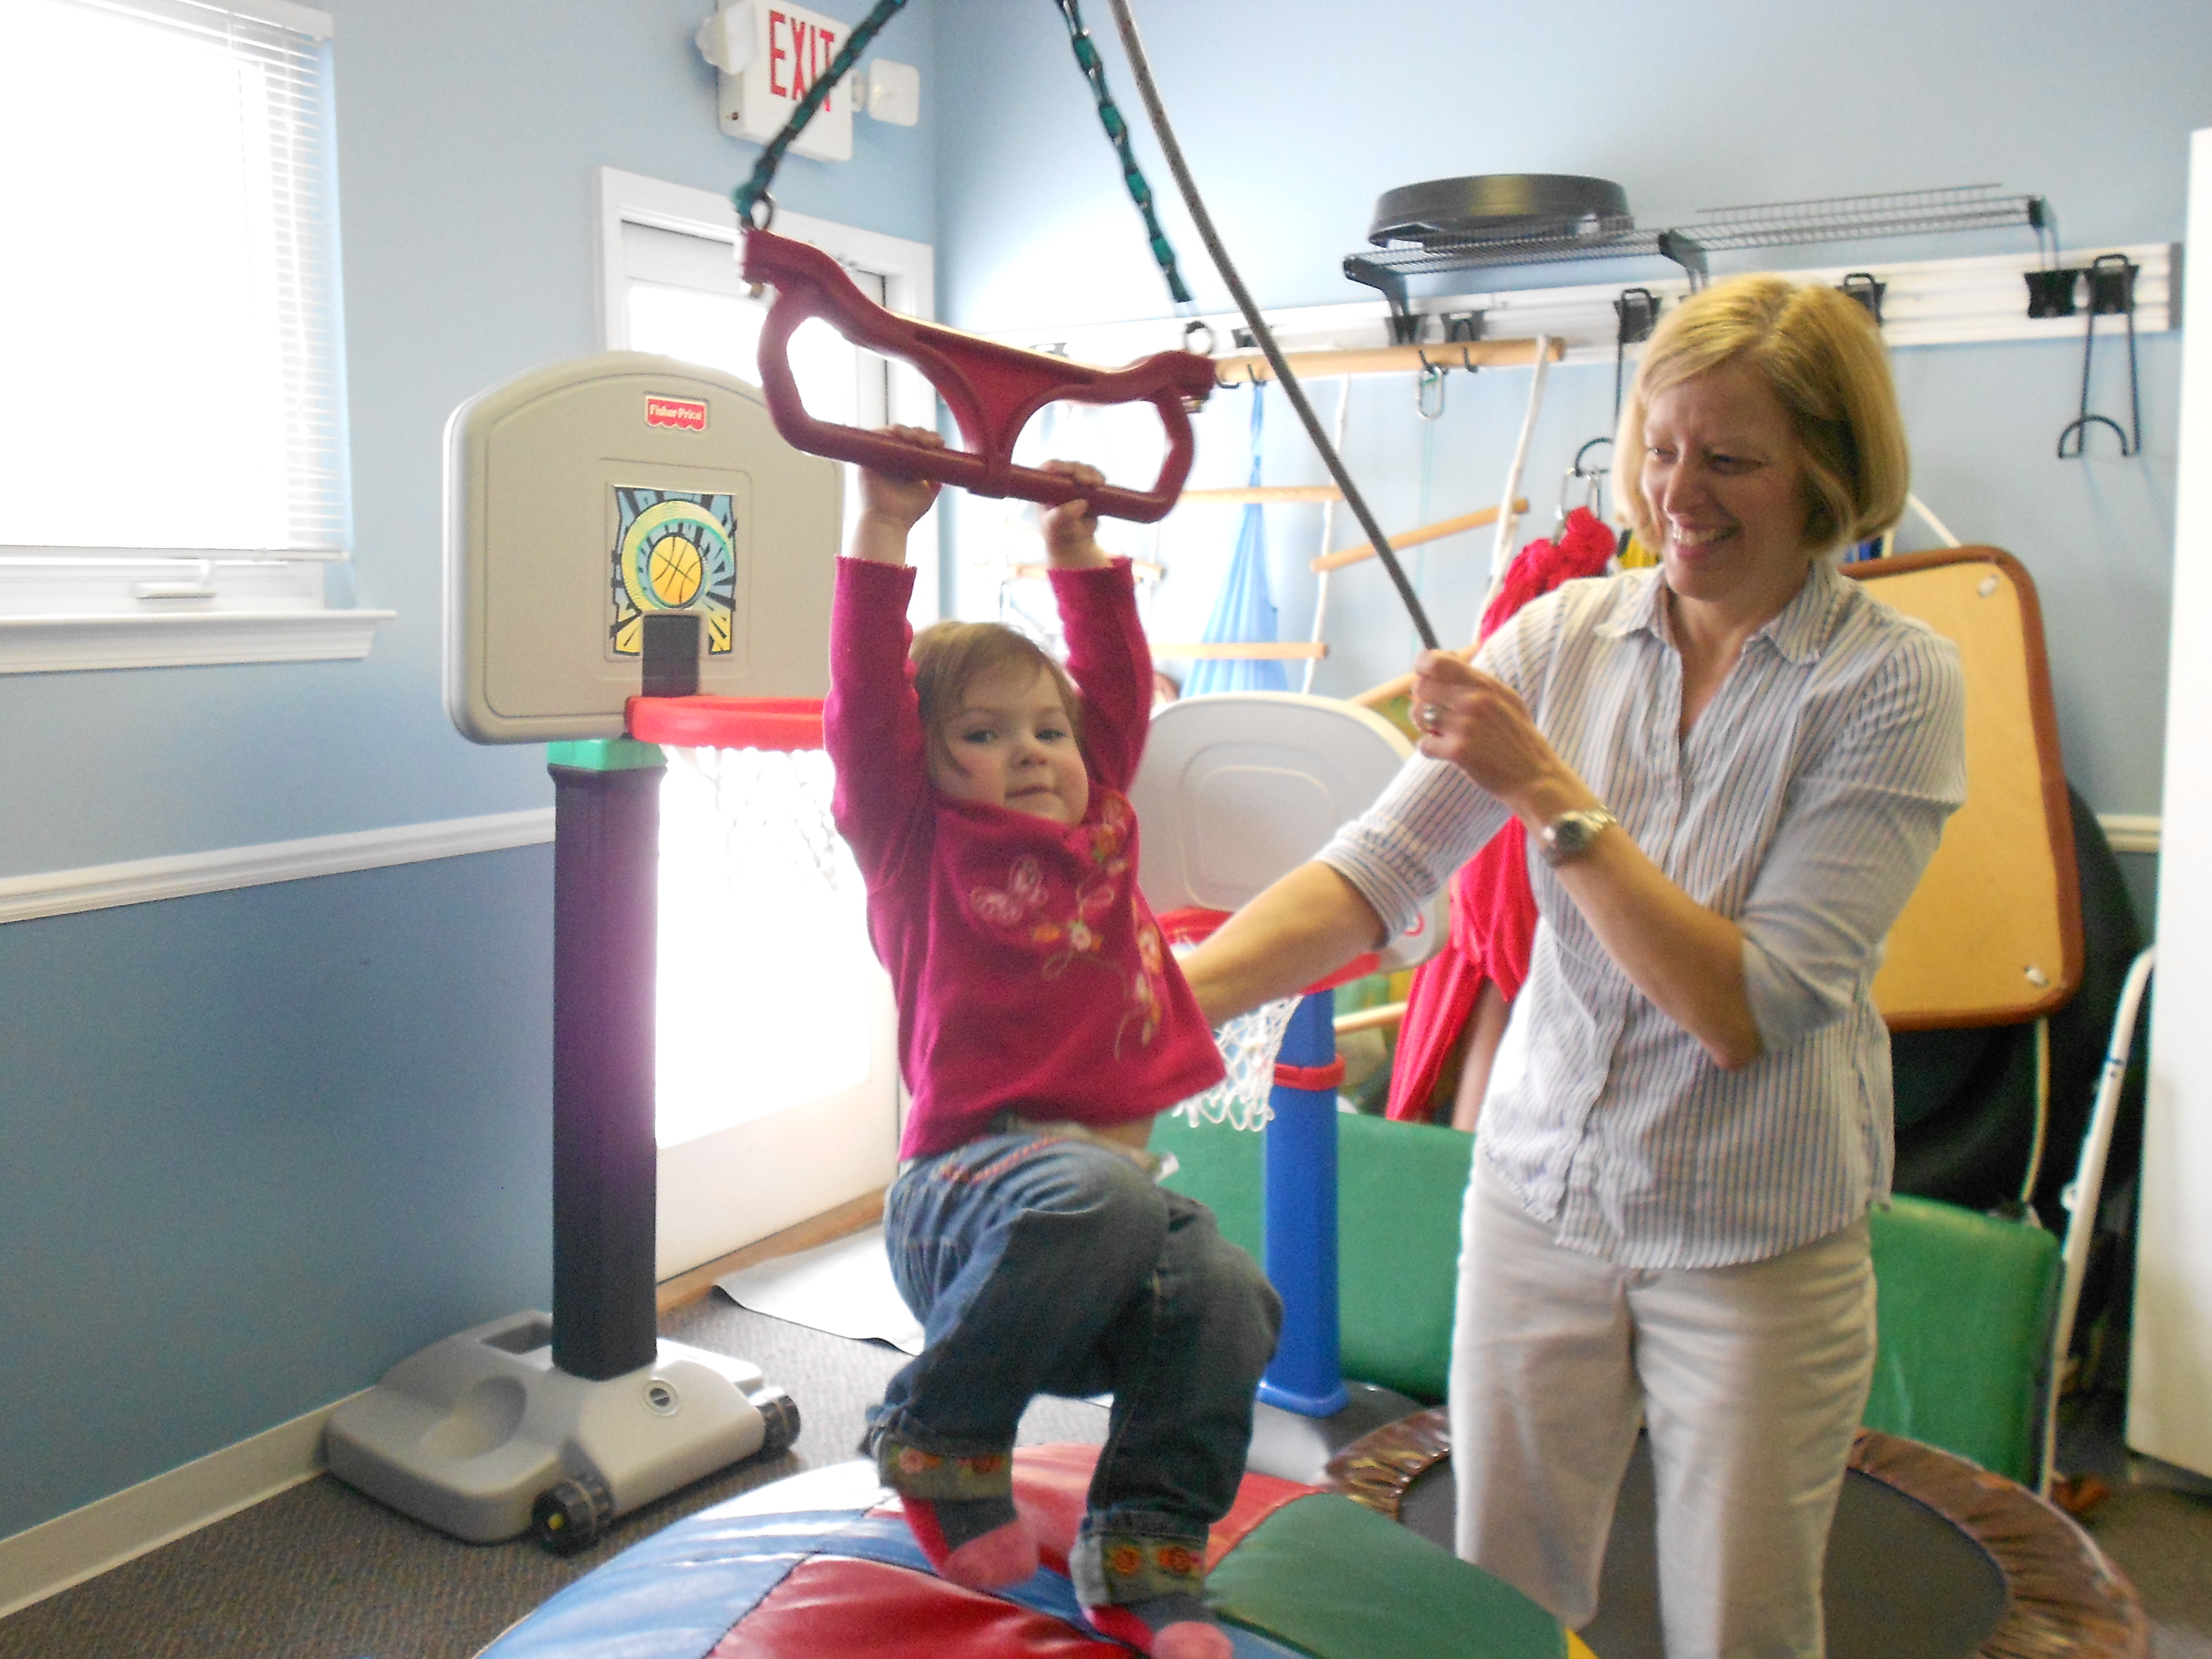 Equipment pediatric physical therapy - Picture 010